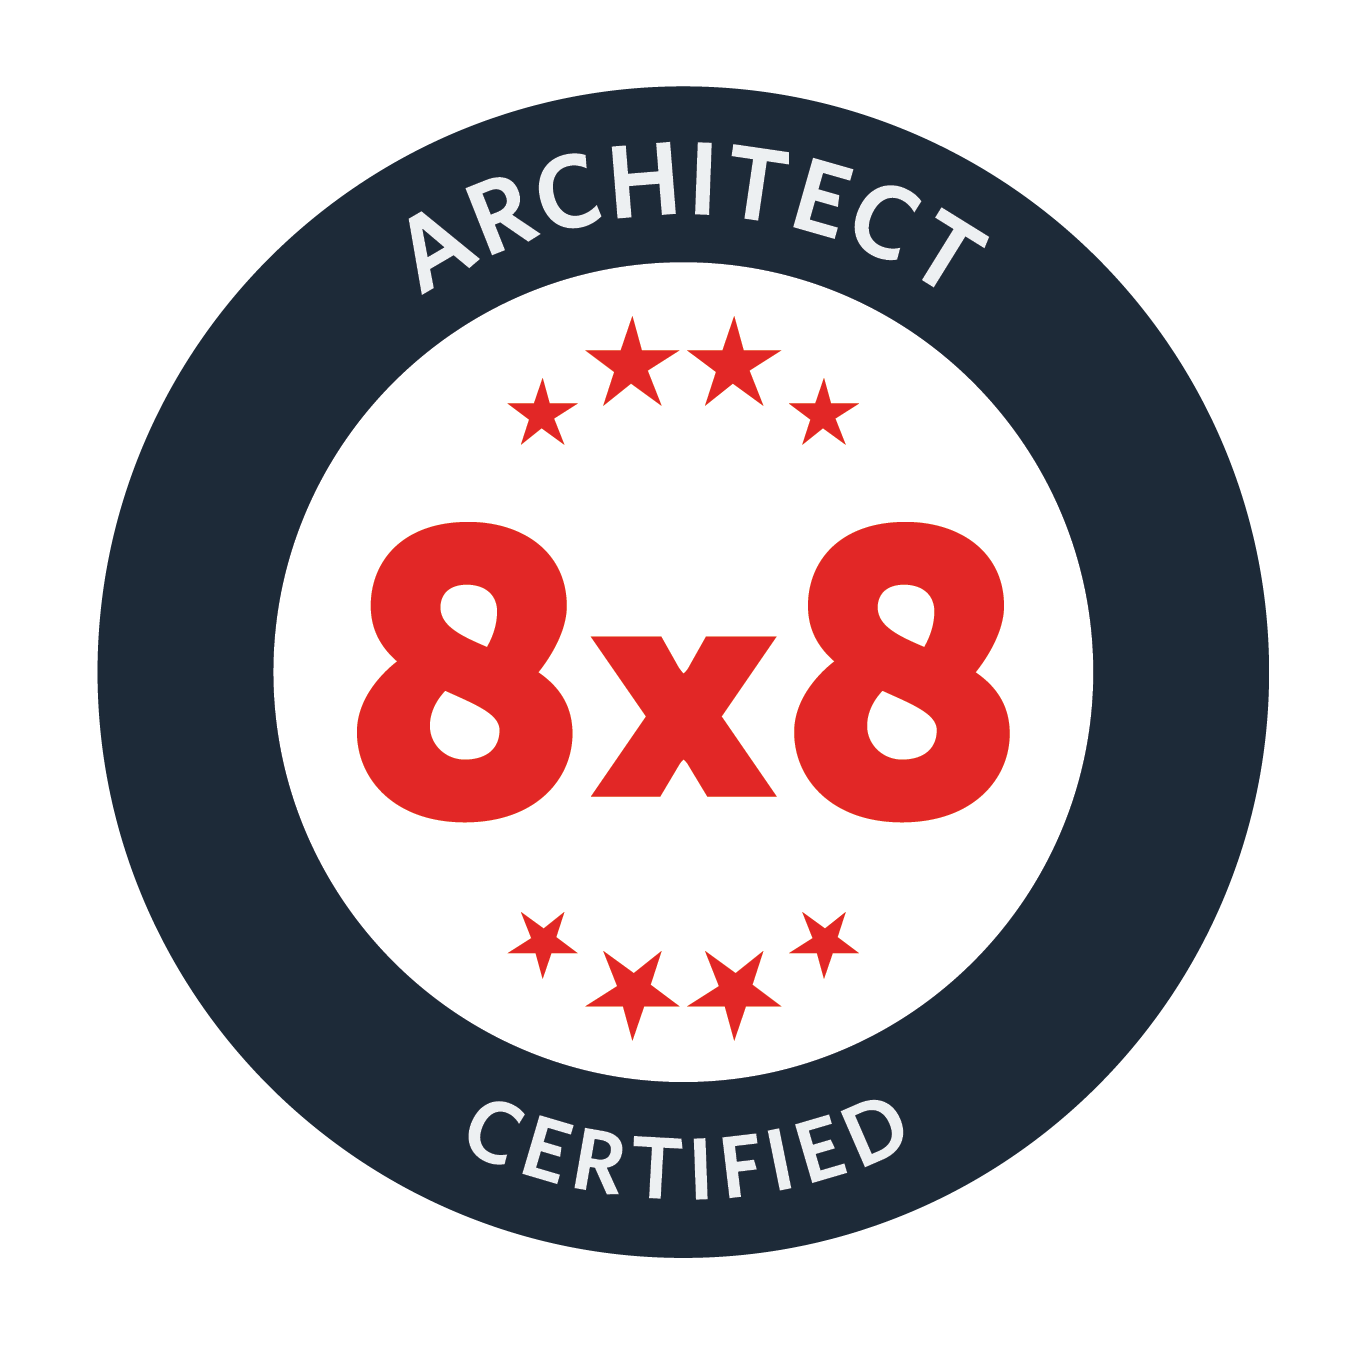 Architect_Certified.png